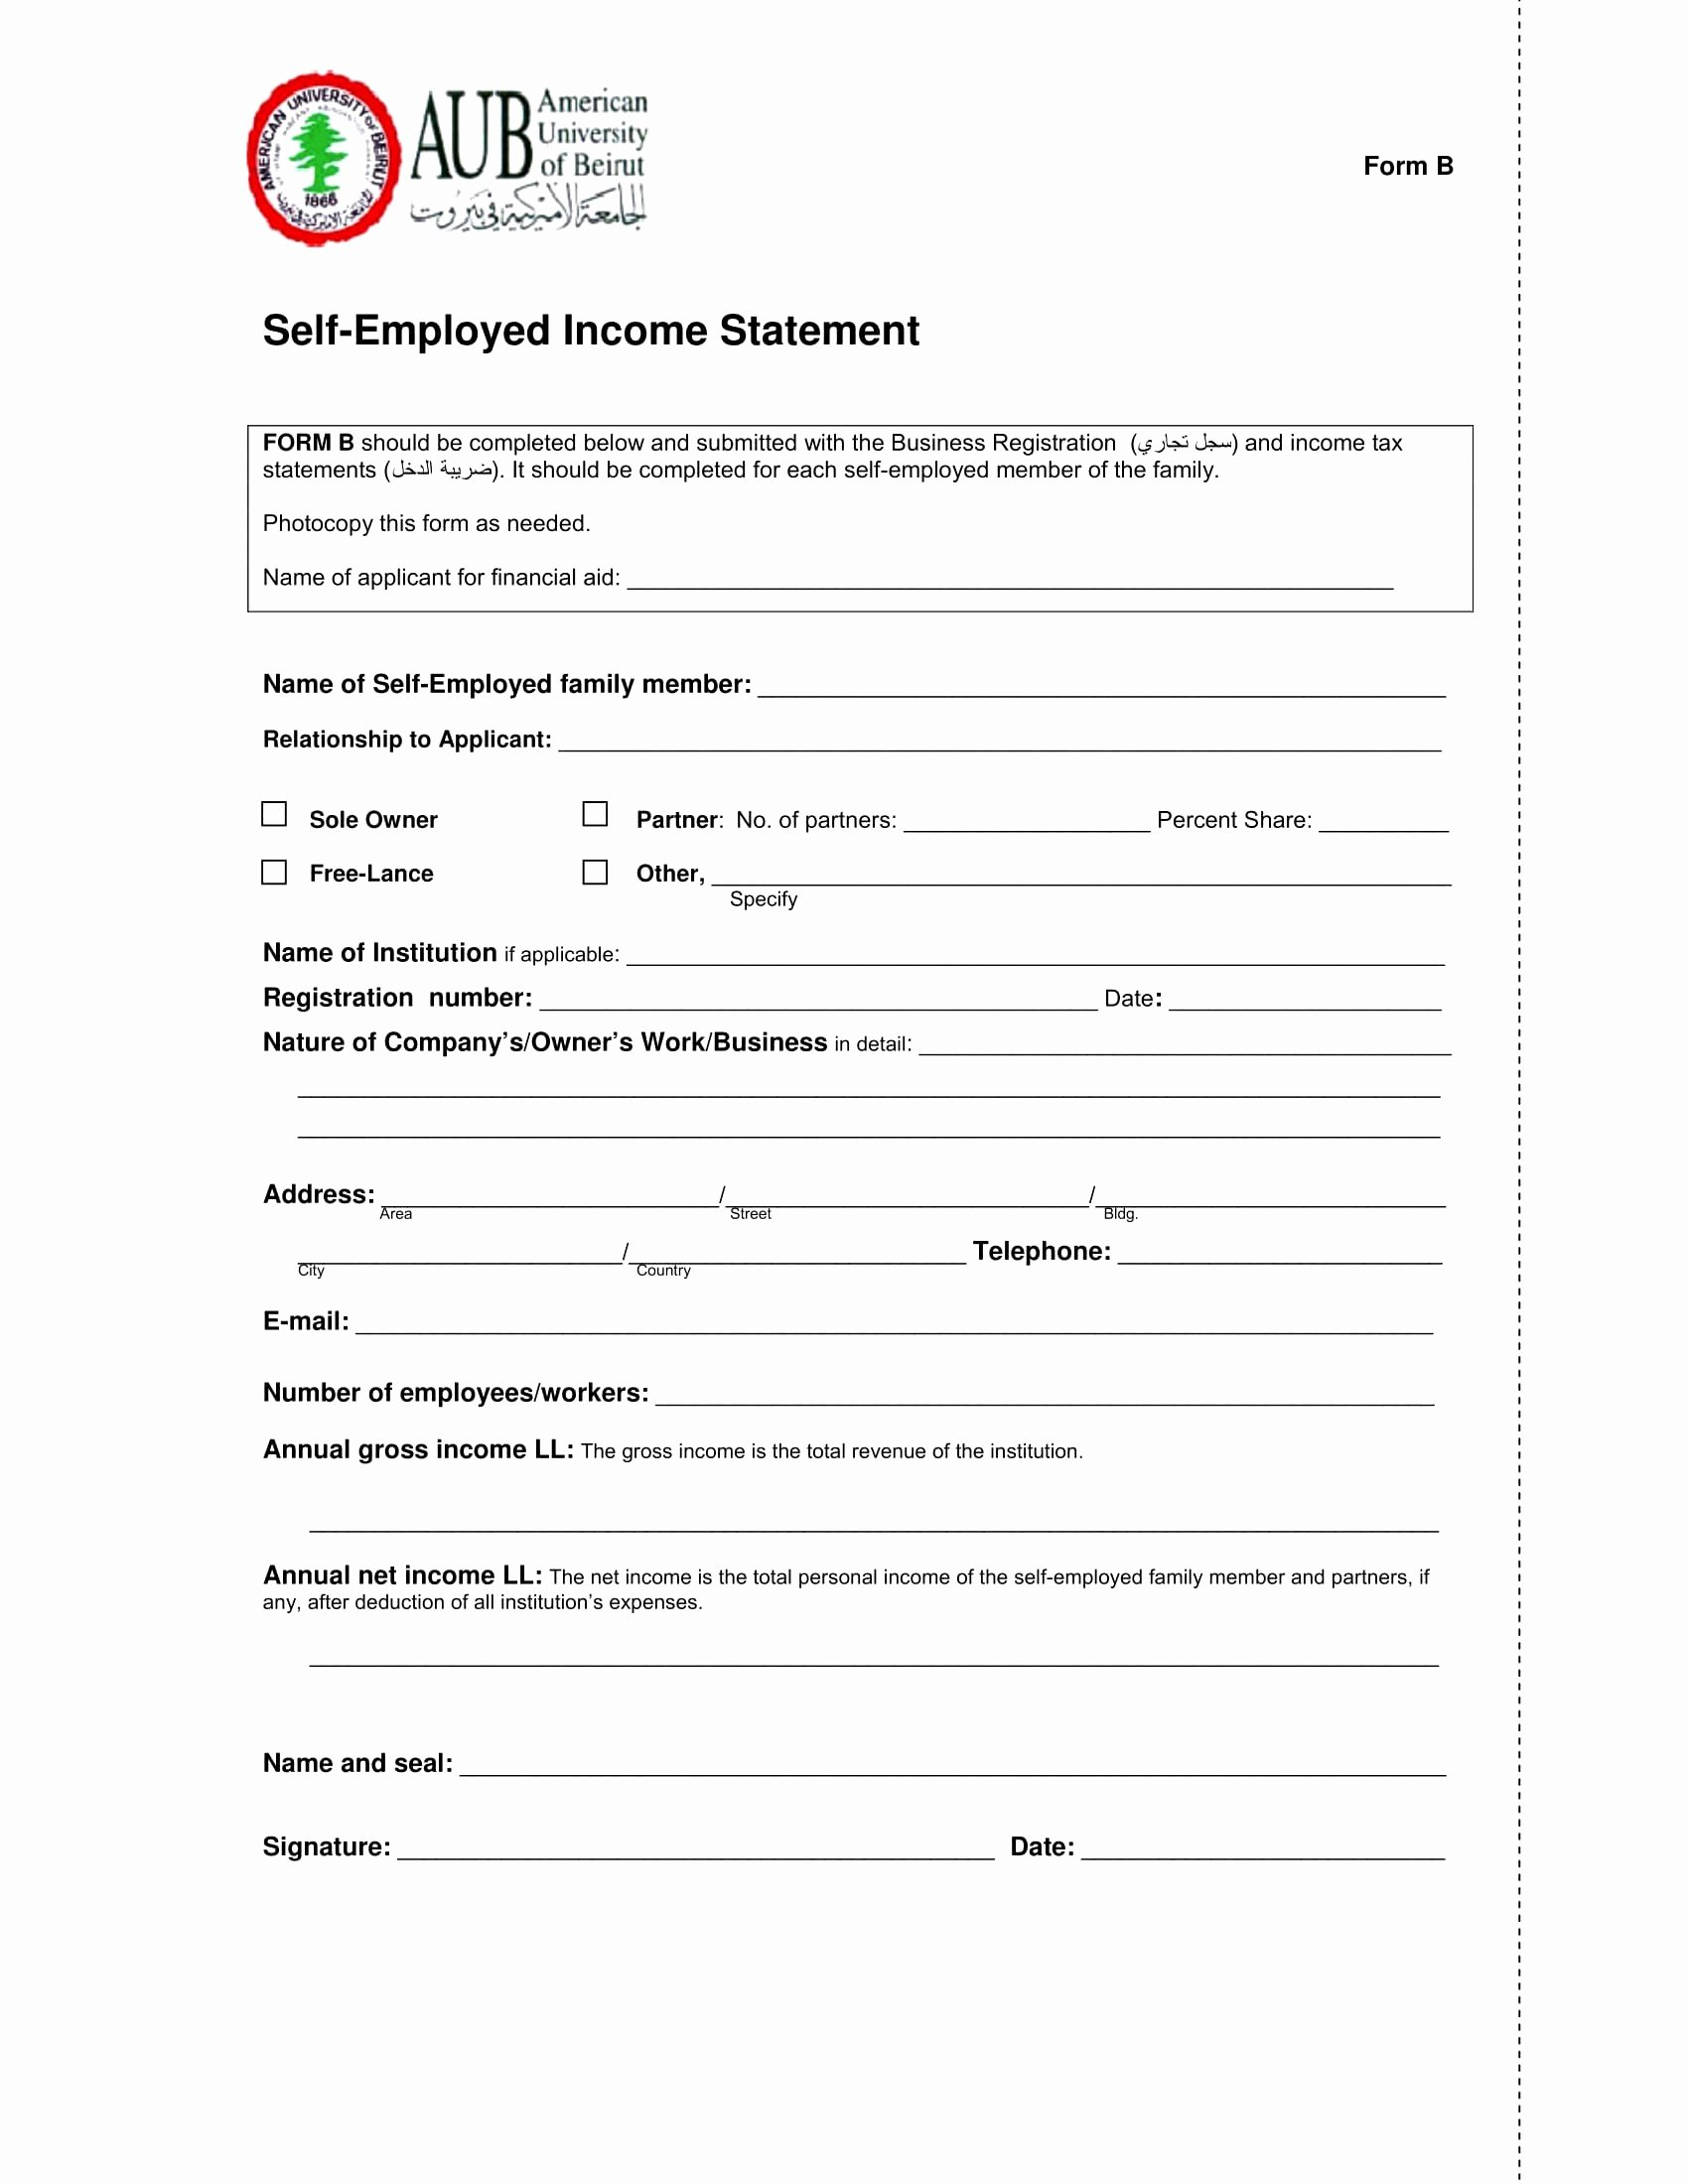 Self Employment Income Statement Template Best Of 9 Annual In E Statement Template Irpens